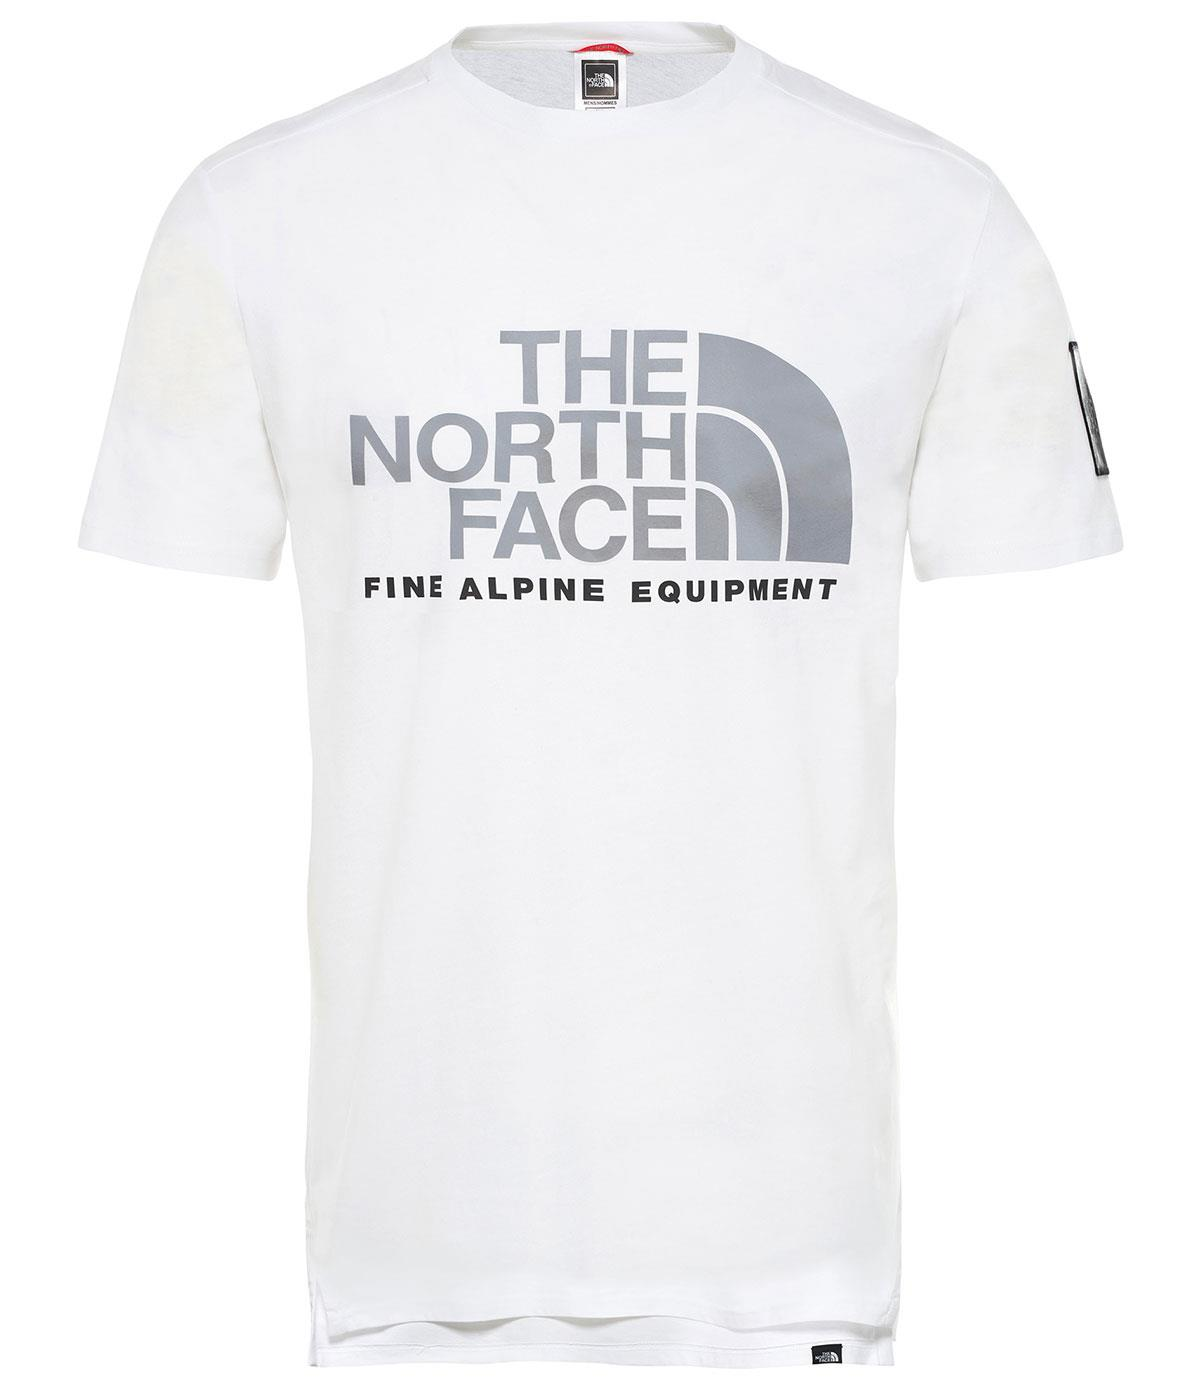 The North Face M Ss Fine Alp Tee 2 Nf0A4M6Nfv31